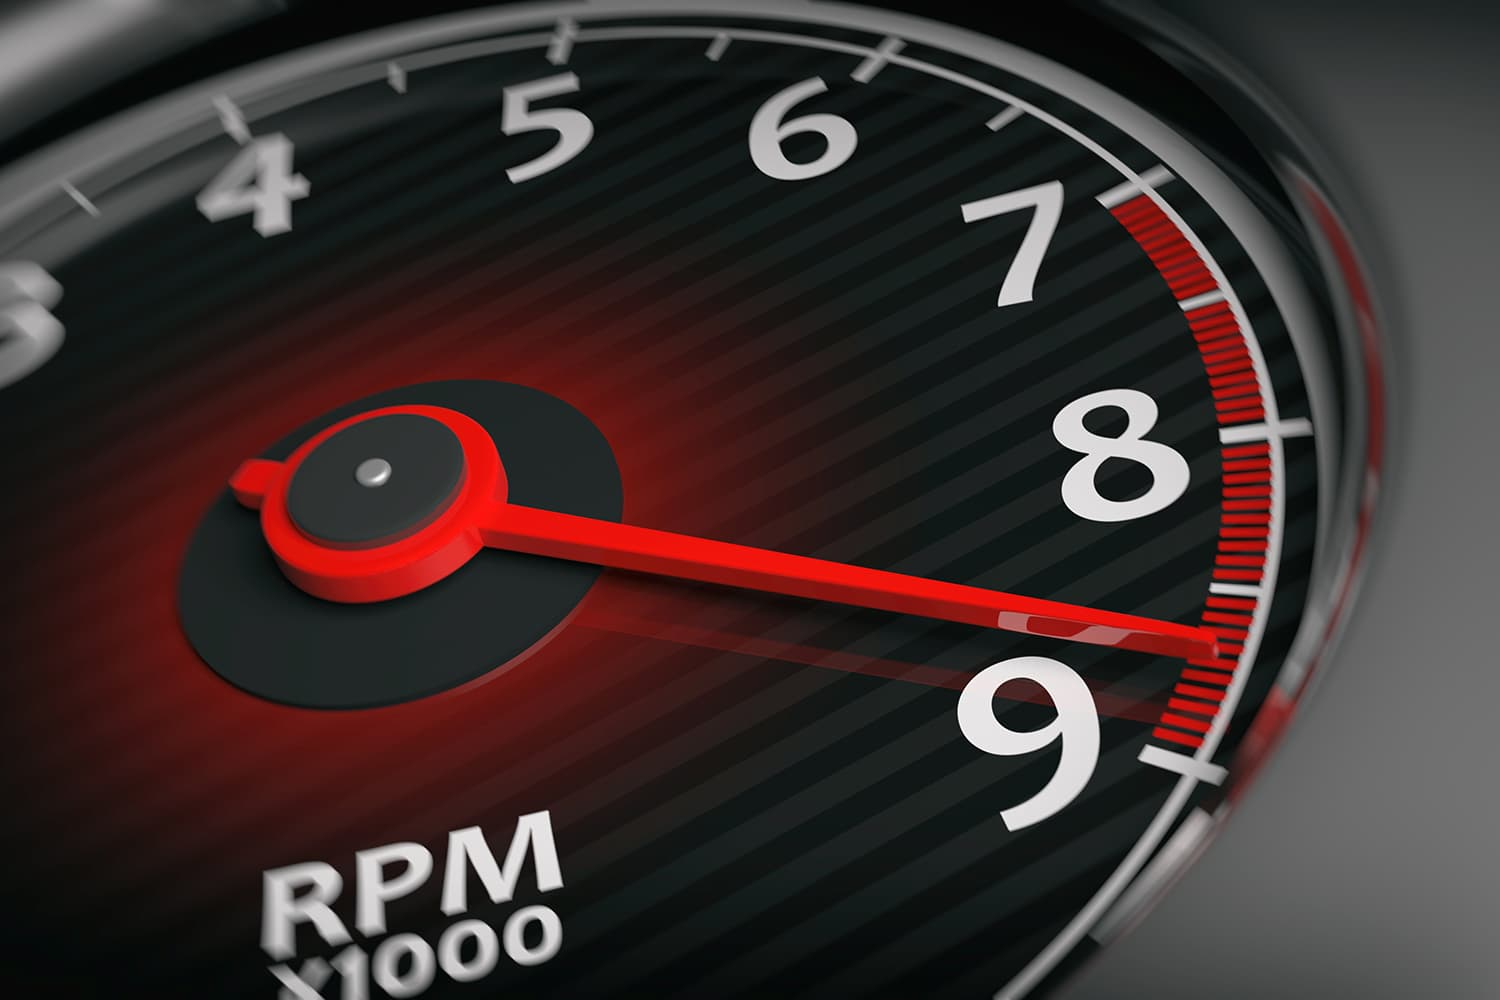 An RPM meter on max.